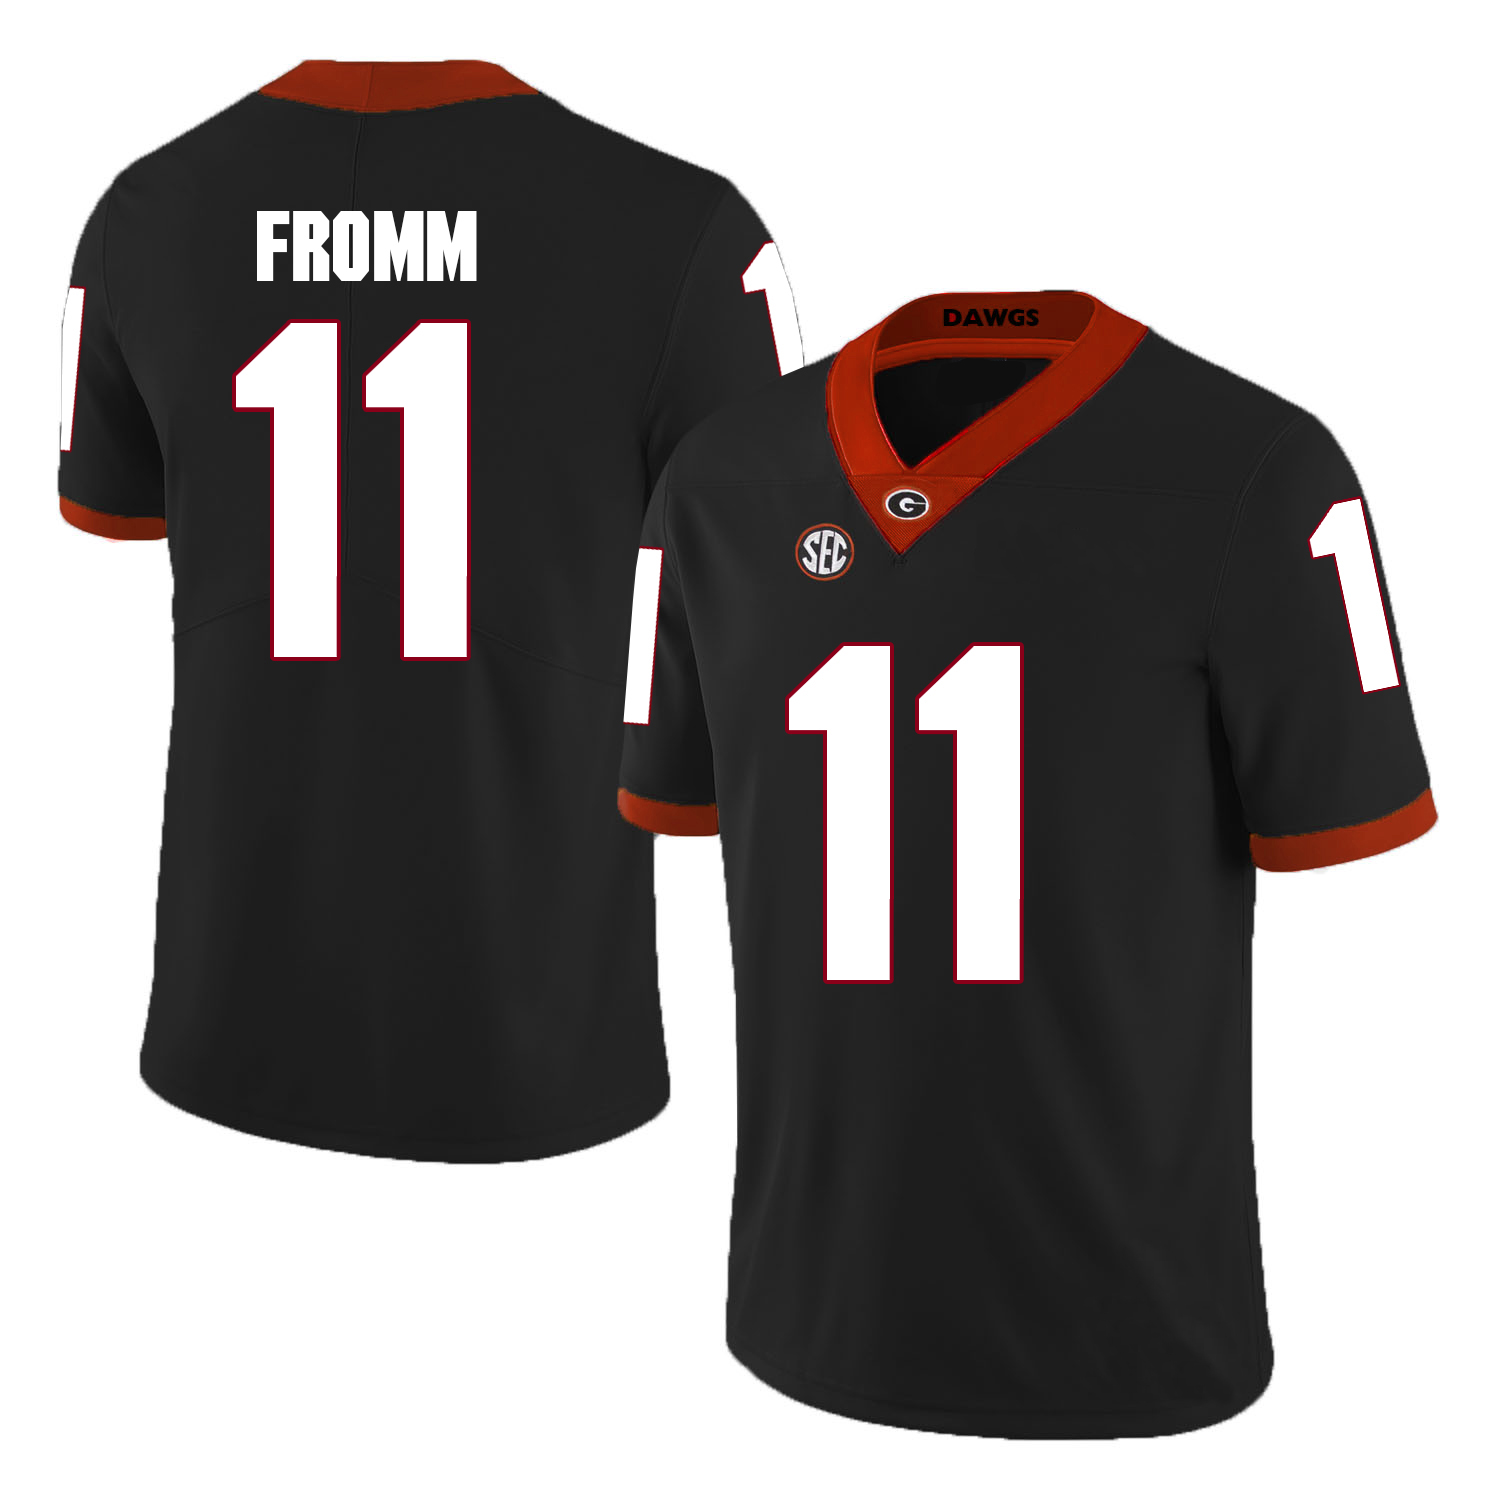 5d6295310 Jake Fromm  11 Georgia Bulldogs Stitched Jersey 2018 Alumni College  Football Men